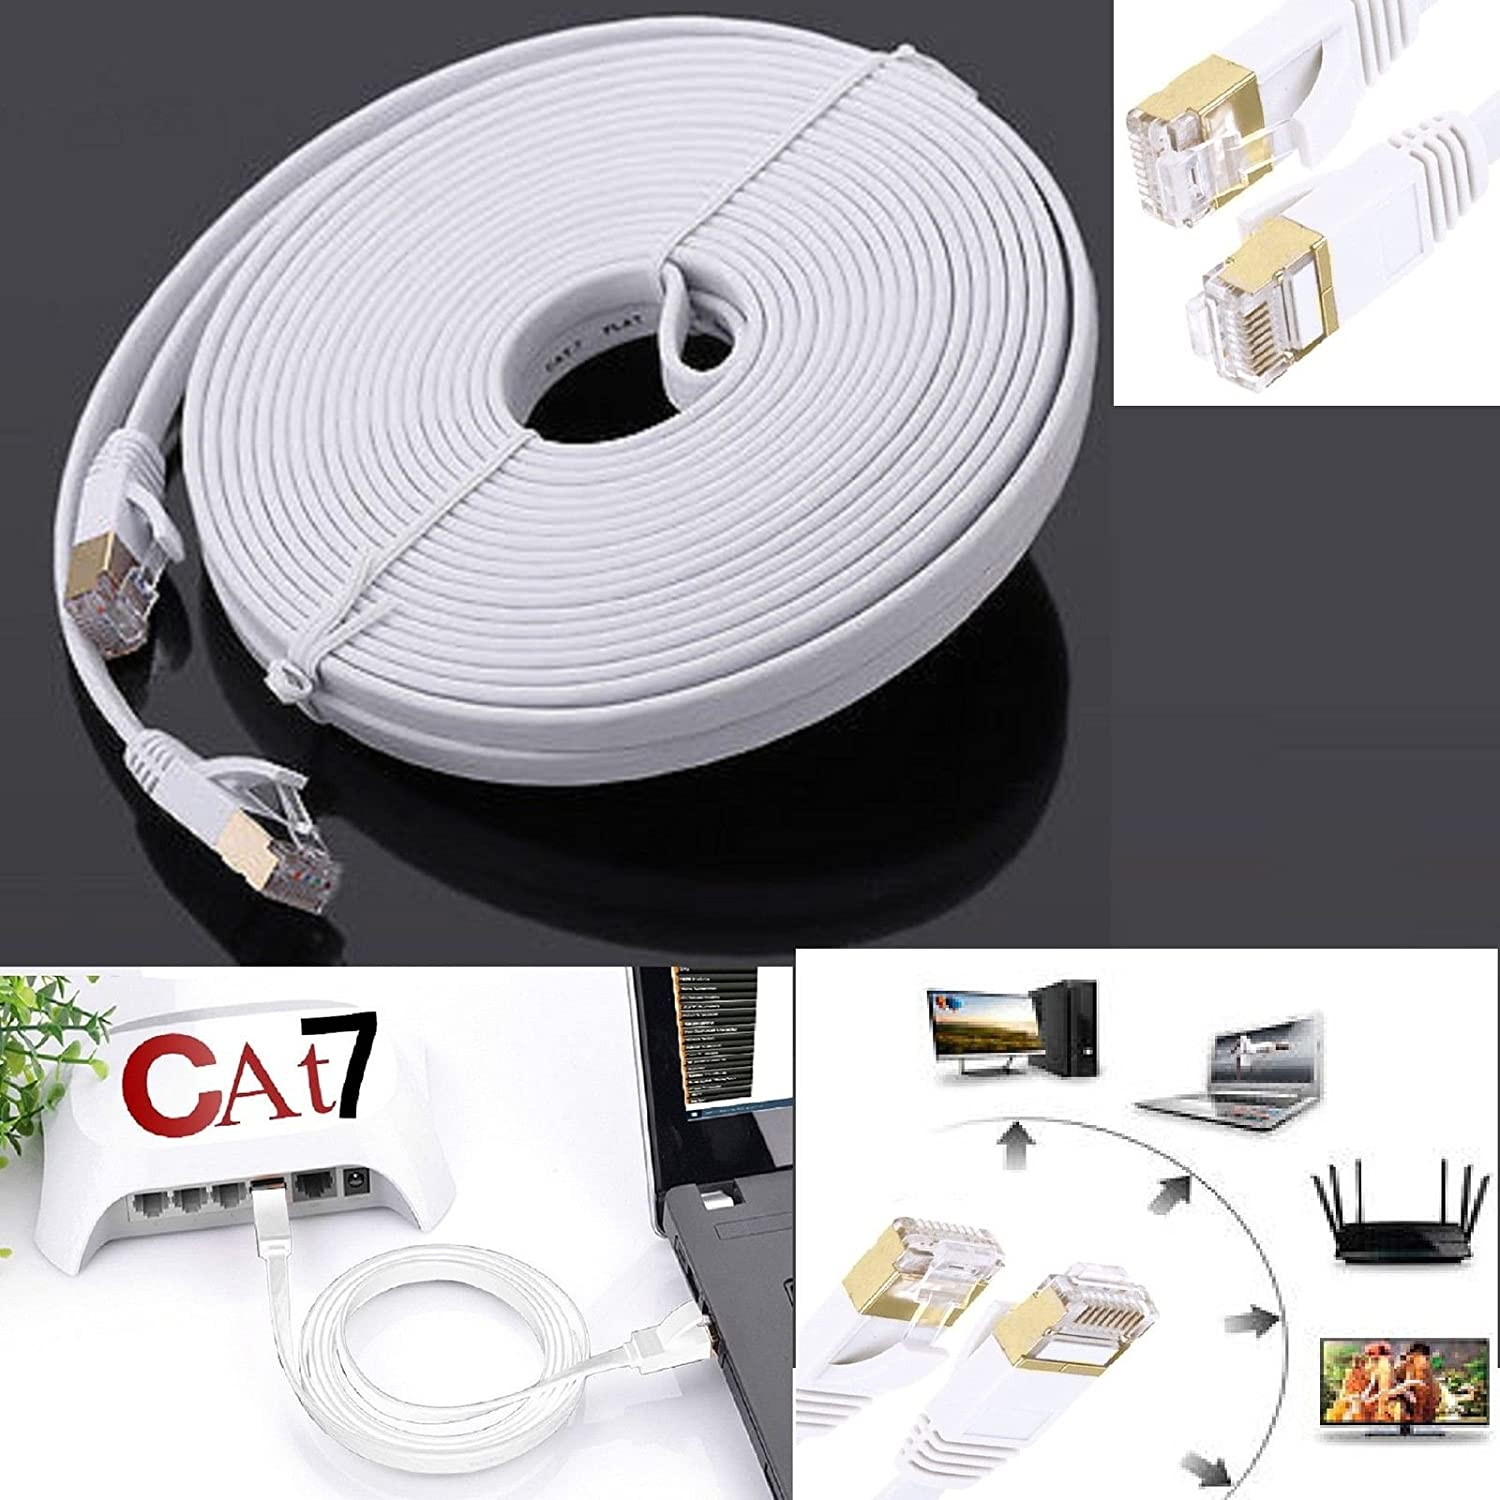 CAT7 10 Gigabit Ethernet Ultra Flat Patch Cable RJ45 Network Patch Cord Cable Northbear Cat7 Flat Ethernet Cable